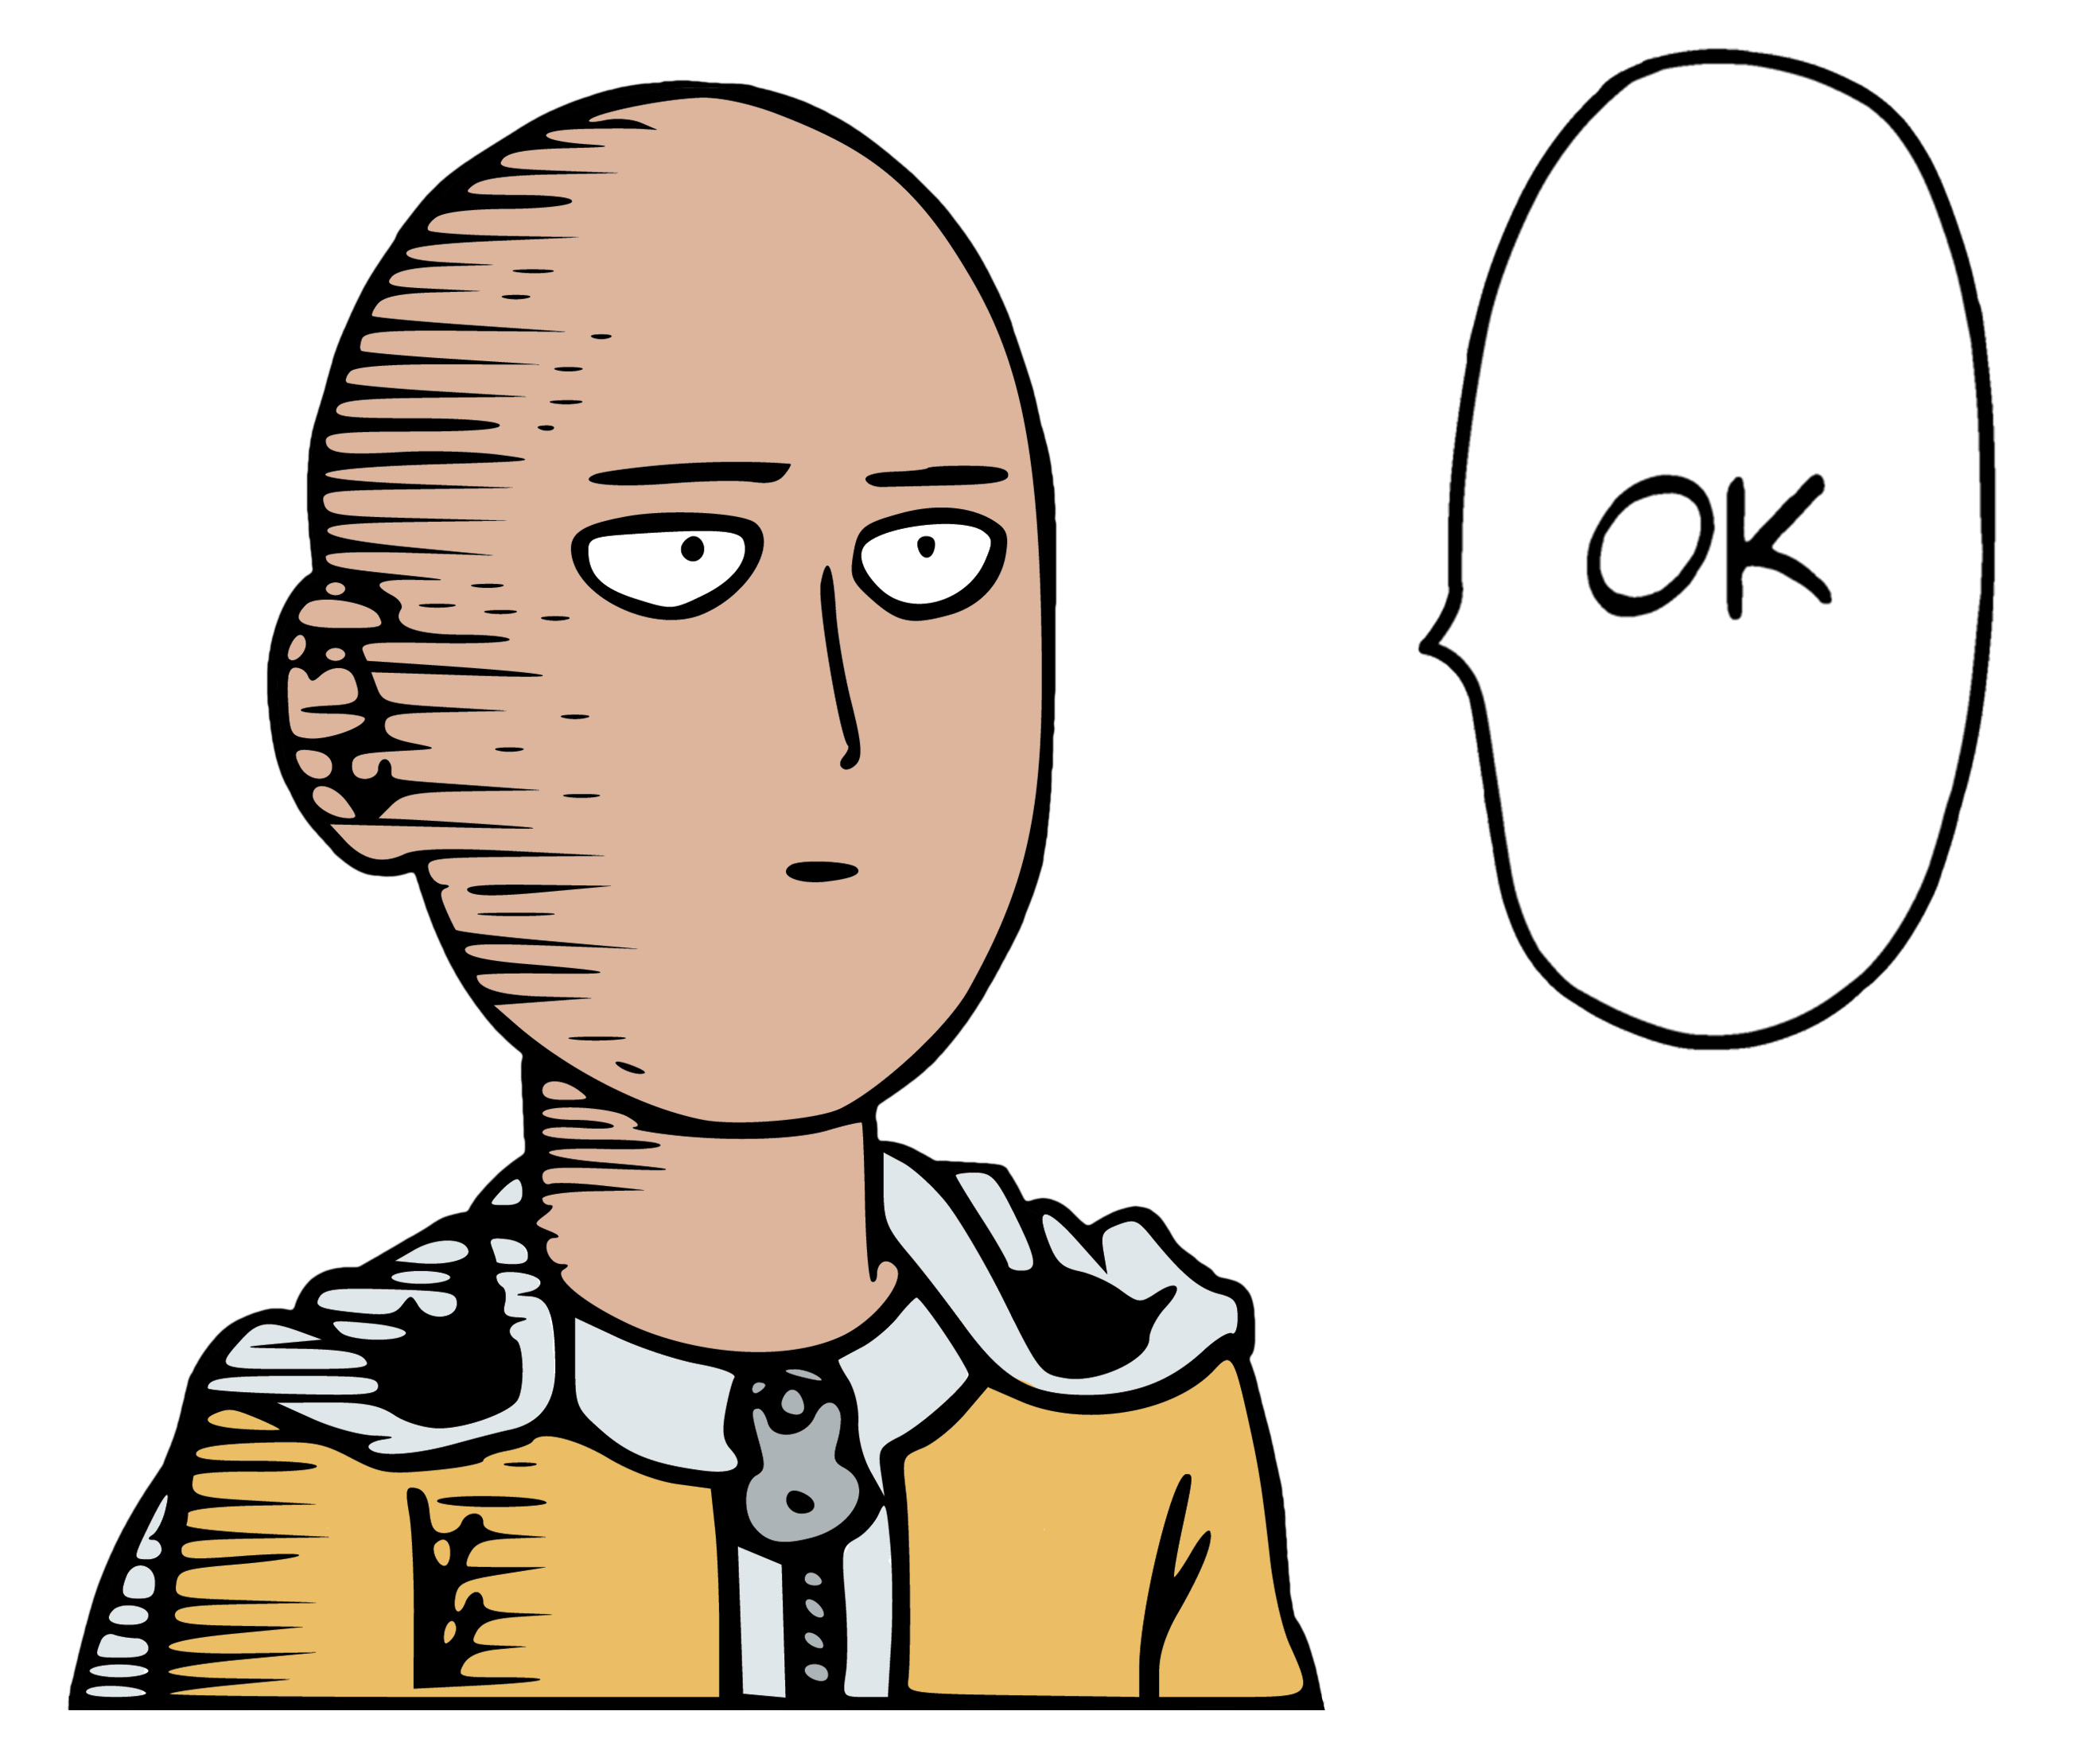 Download One Punch Man - Saitama Ok Color transparent PNG